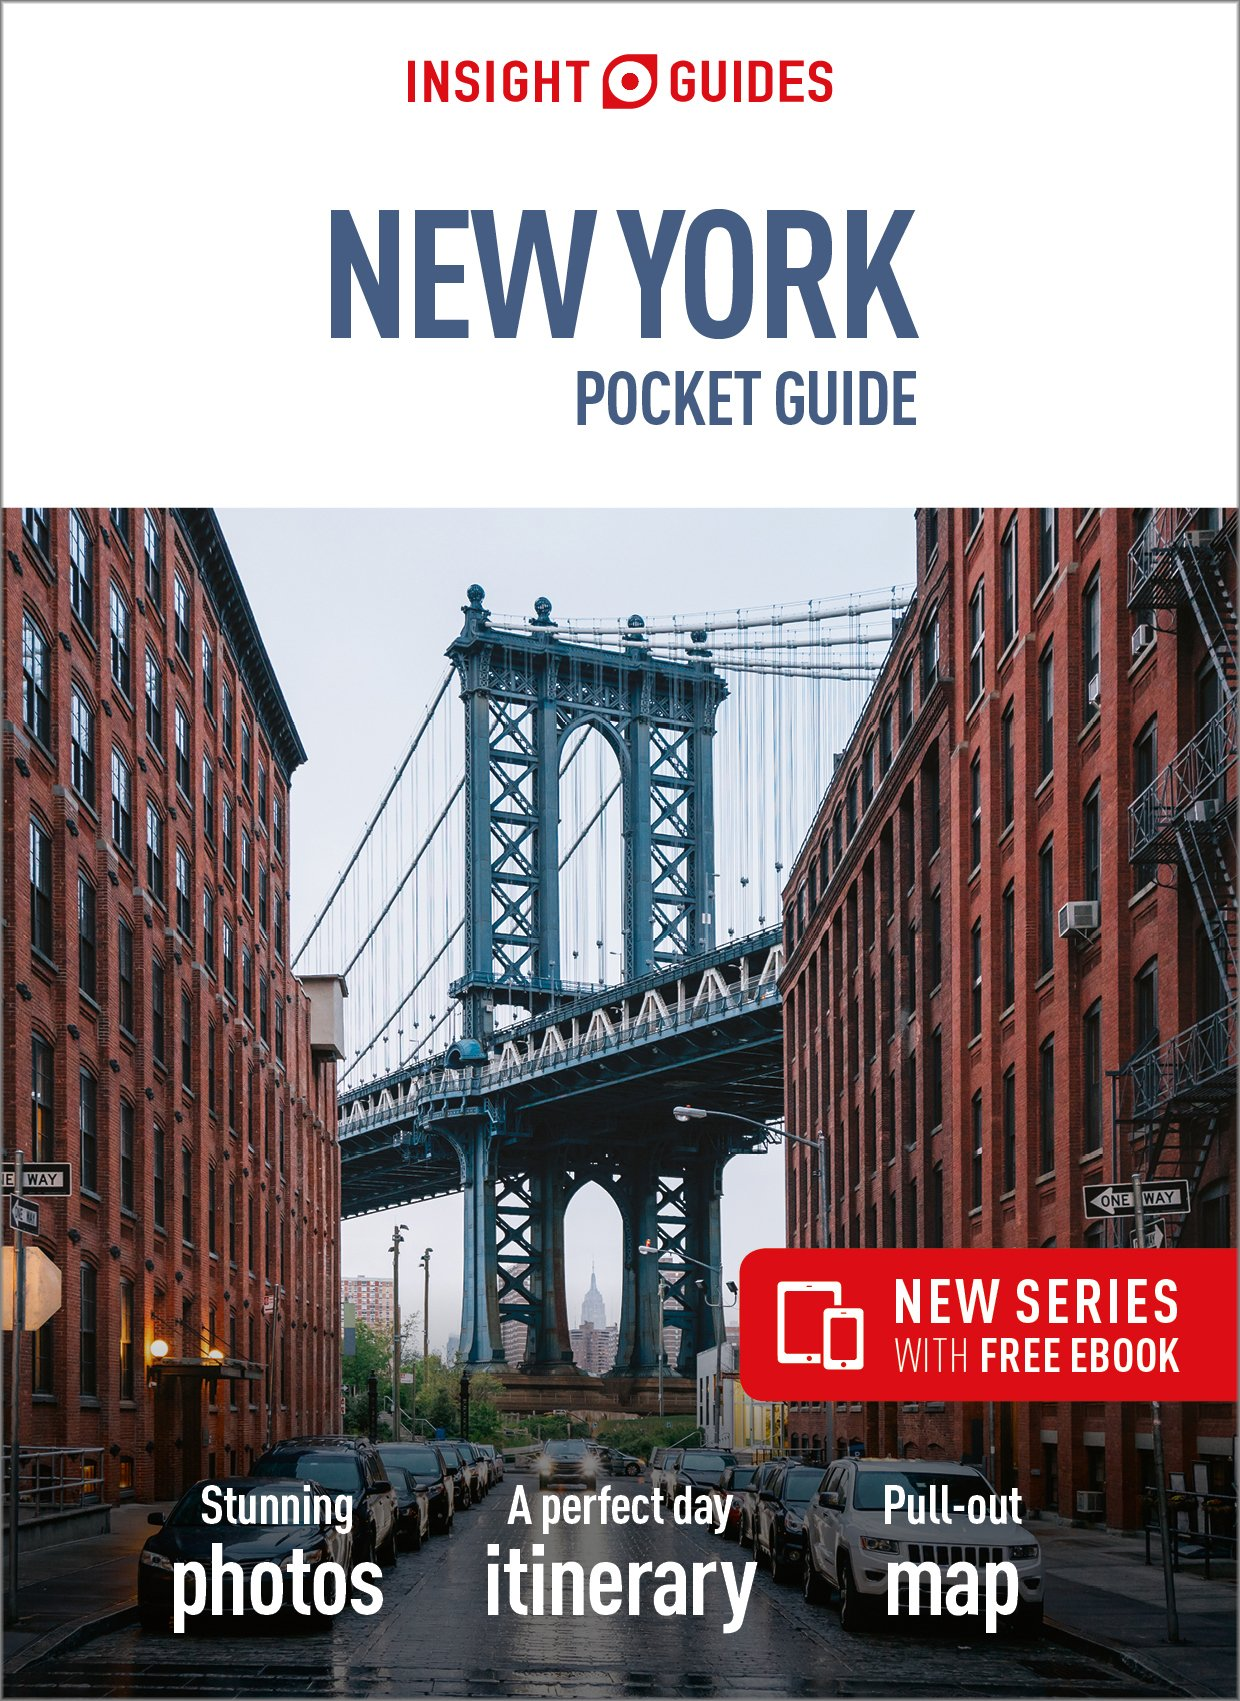 Insight Guides Pocket New York City Travel Guide with Free eBook